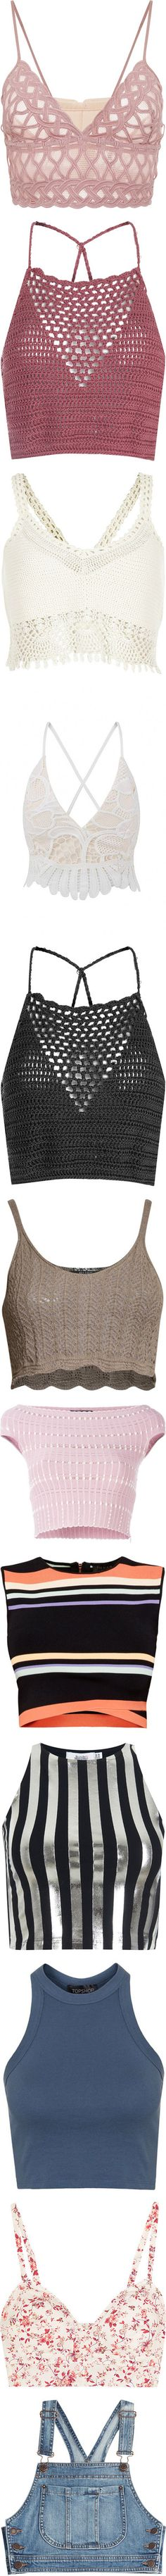 Tanks/Crop Tops by topazleann on Polyvore featuring women's fashion, tops, crop tops, bralet, shirts, crop, lace crop top, crochet crop top, white shirt and bralette tops